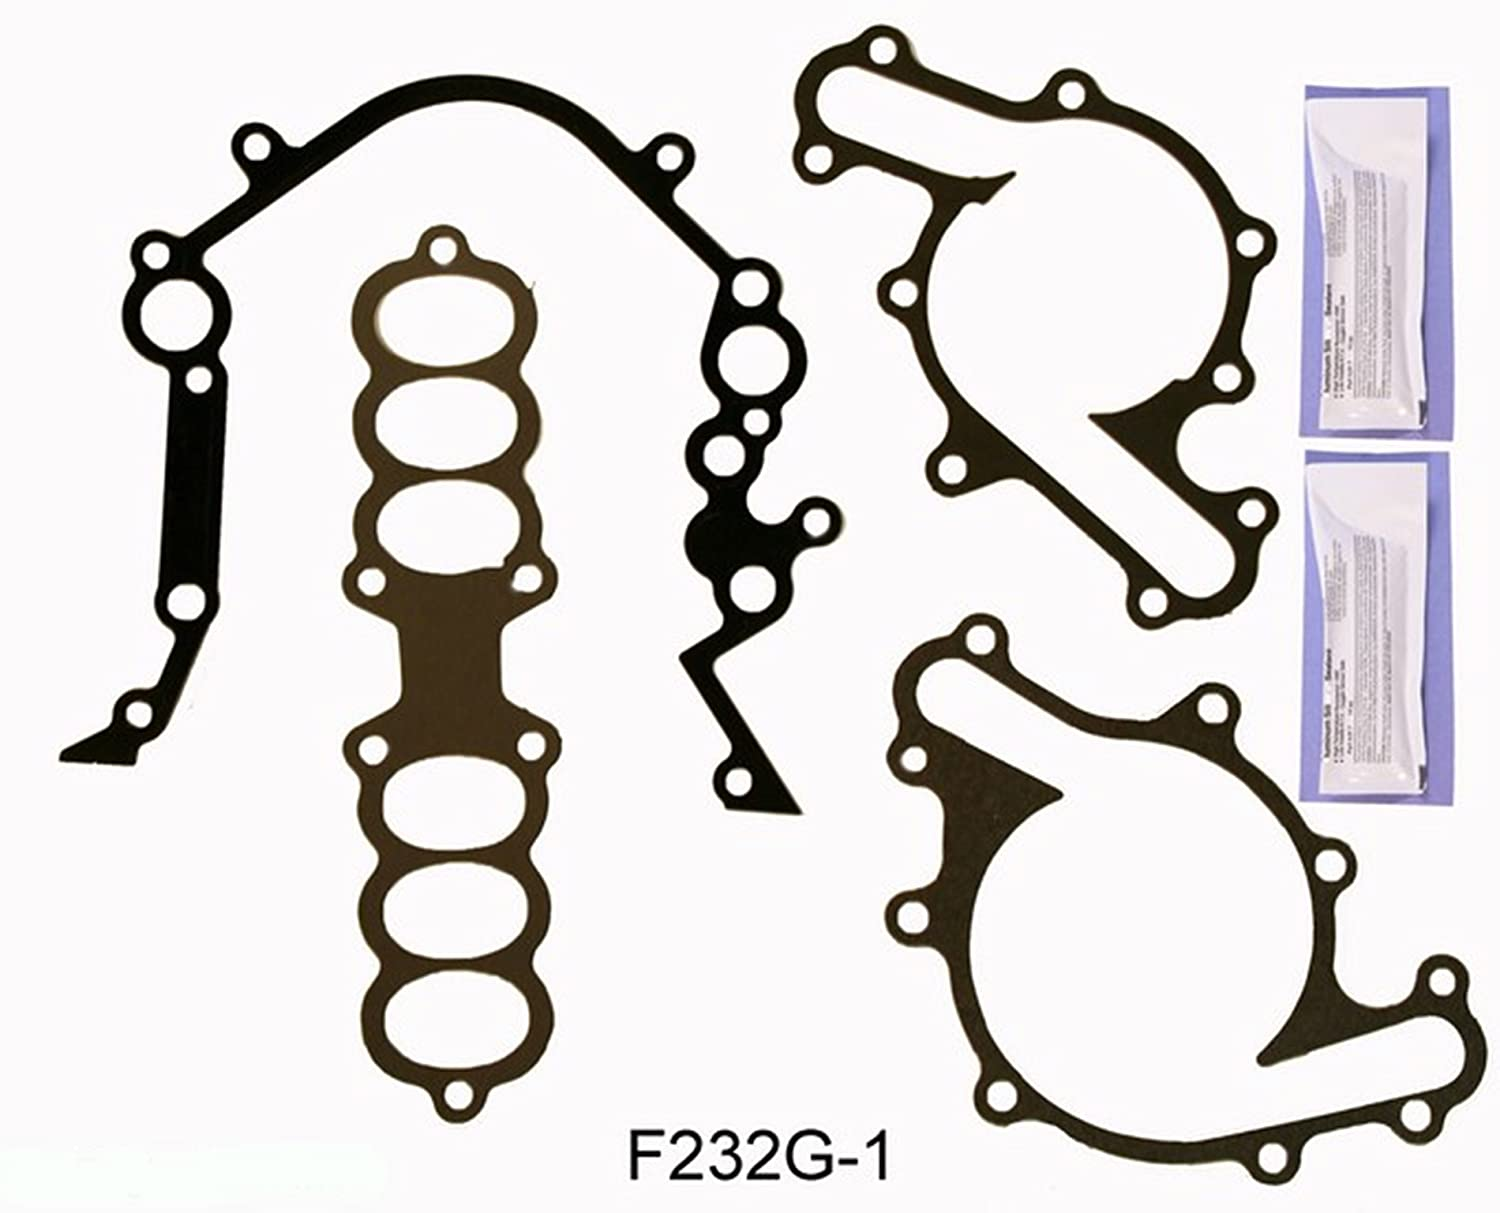 1997-1998 Ford TBird Mustang Cougar 232 3.8L OHV V6 ESSEX ReRing Kit w//Full Gasket Set Rings Bearings FITS